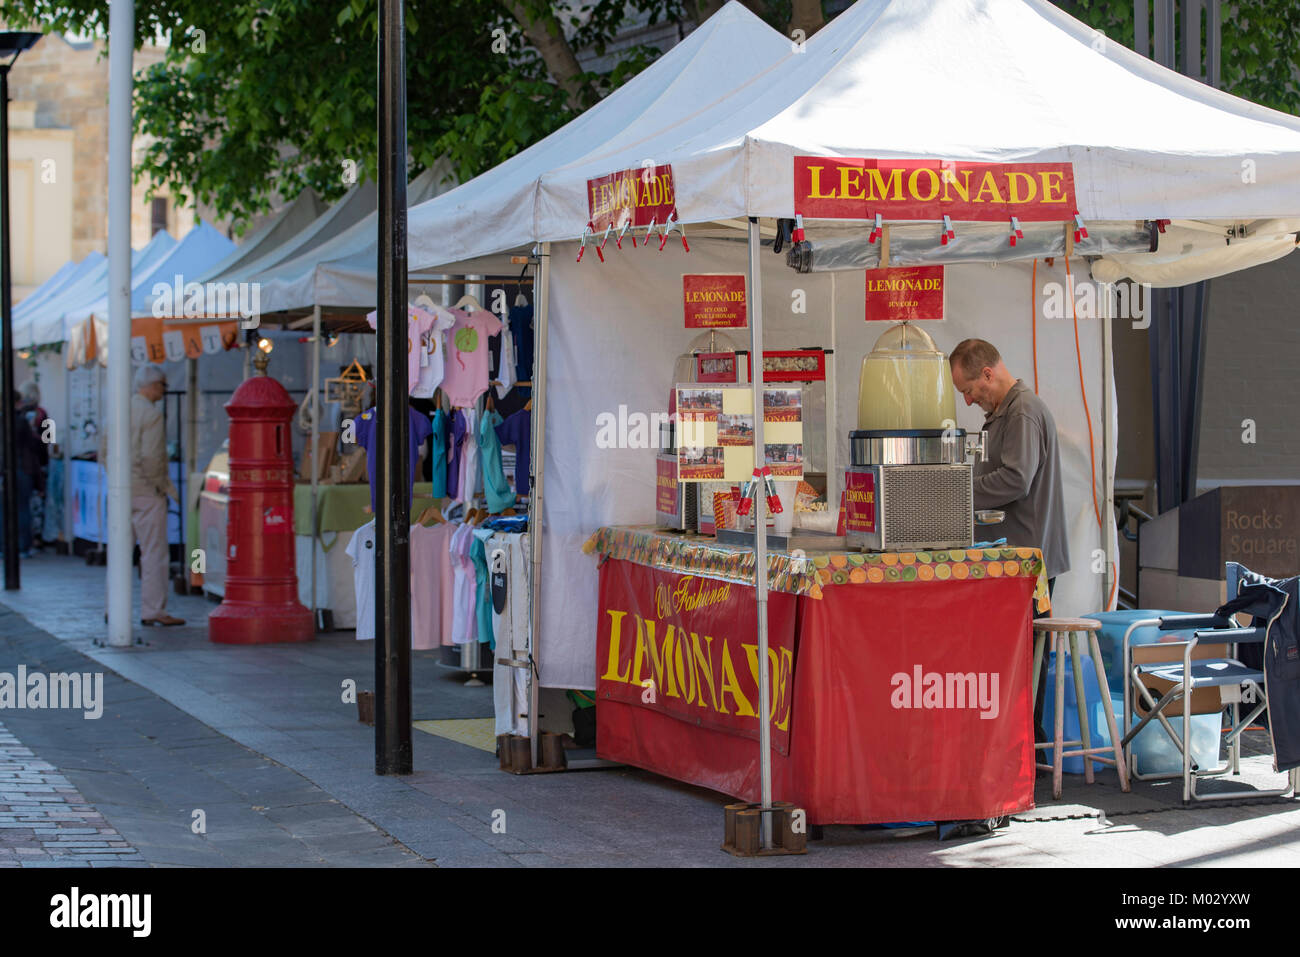 A lemonade stand, part of a large weekend market in Sydney's historic Rocks Precinct in New South Wales, Australia - Stock Image